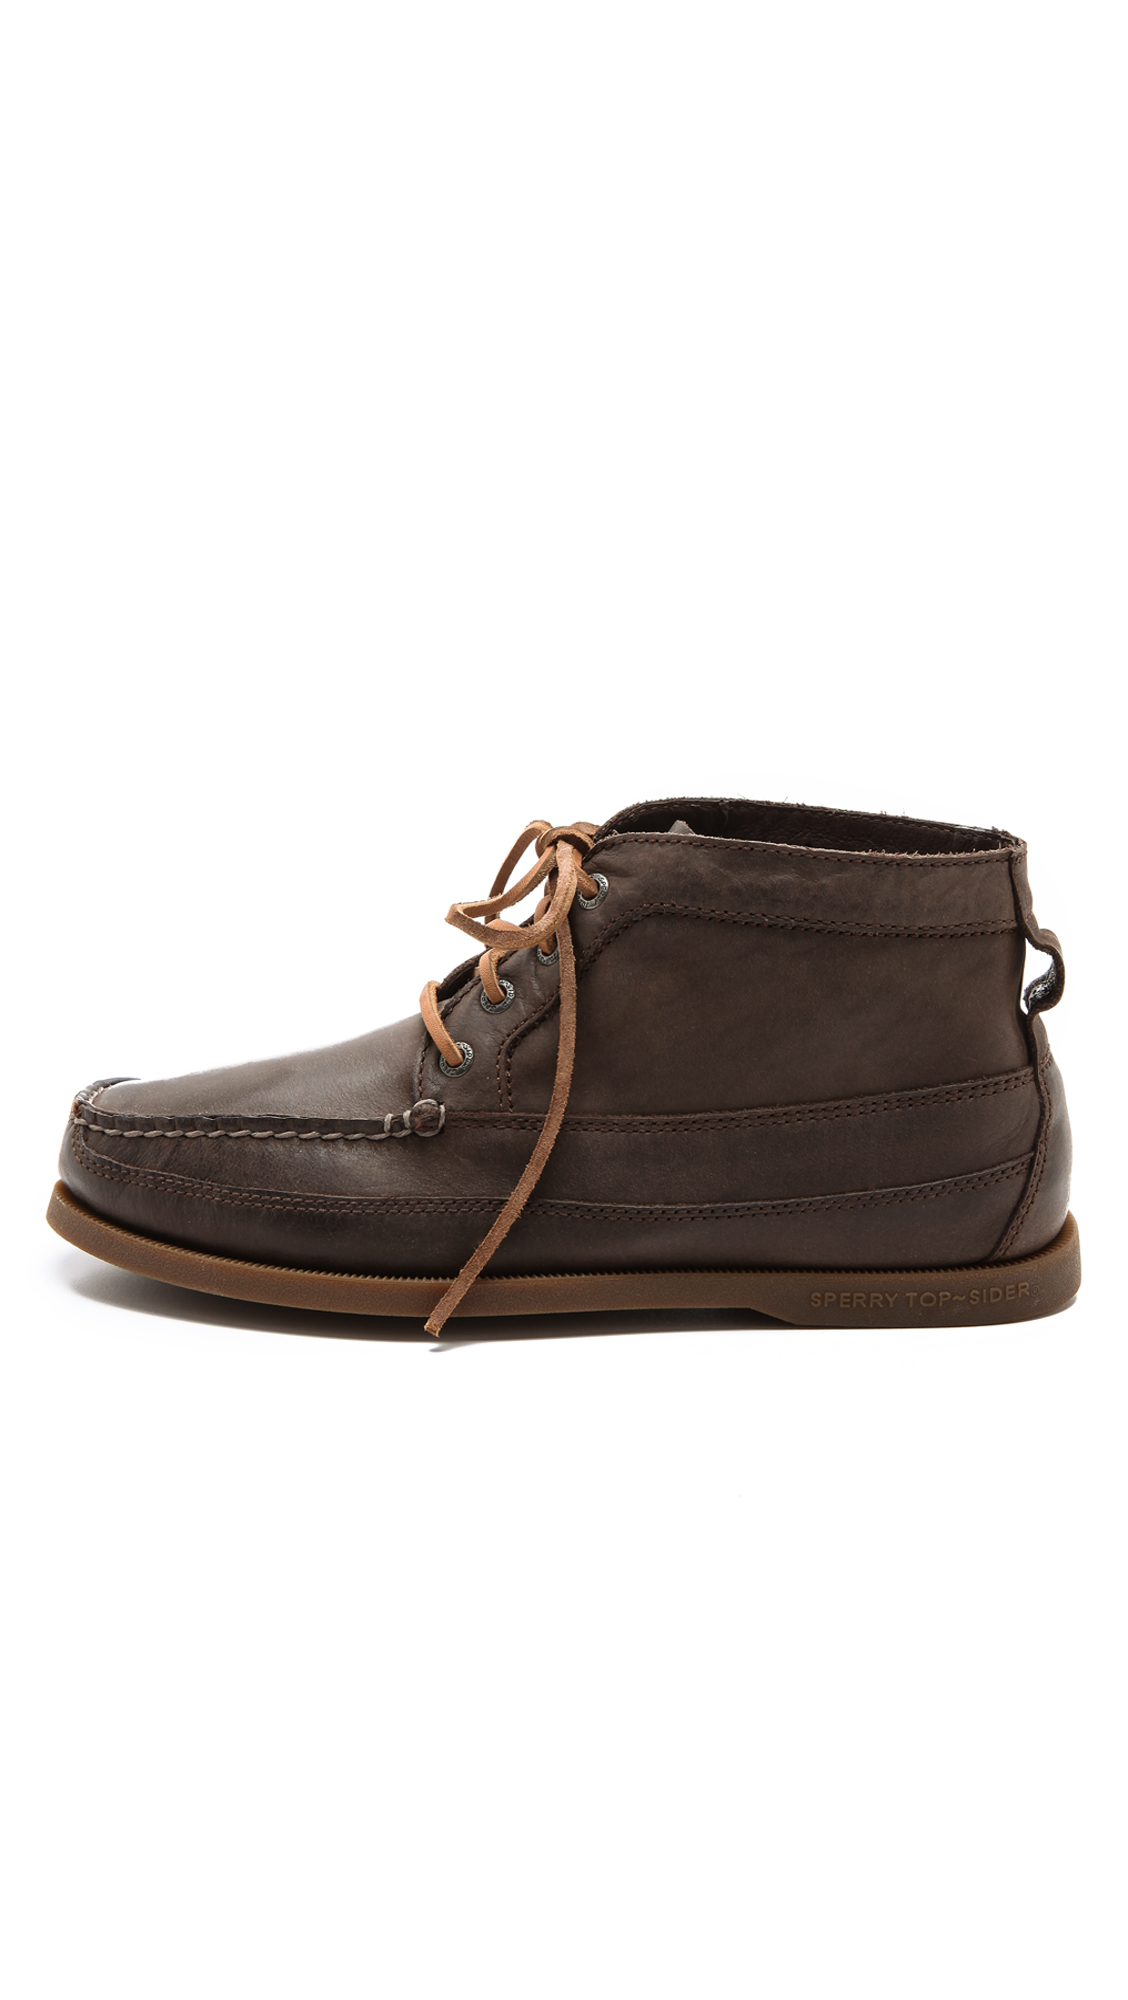 sperry top sider boat chukka boots in brown for lyst